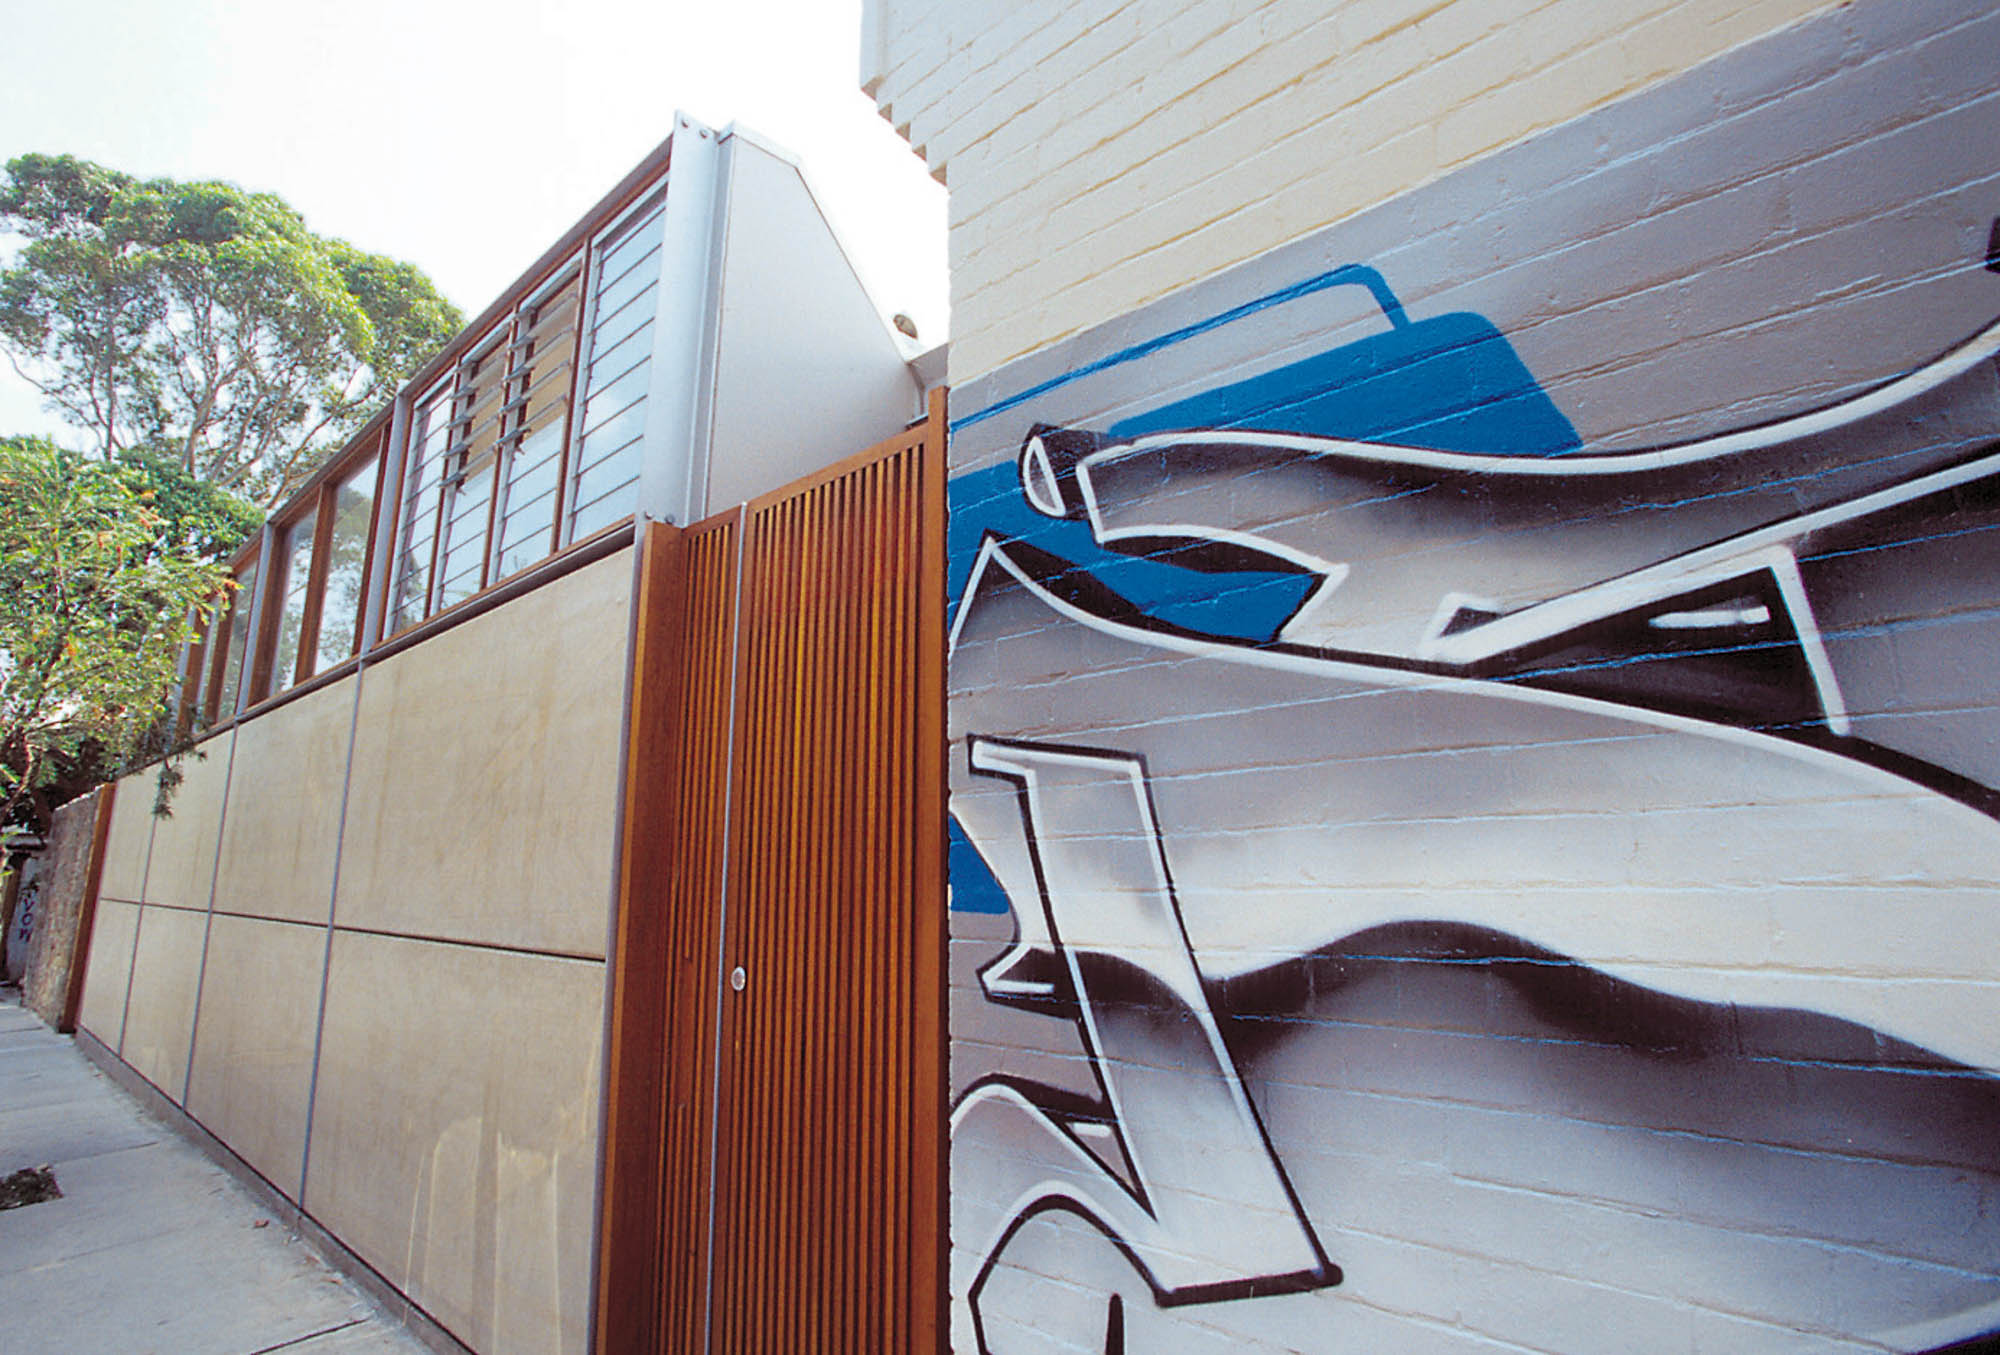 House in King Street Newtown renovated by Chris Major and David Welsh of Welsh + Major, .SMH Picture by PATRICK CUMMINS